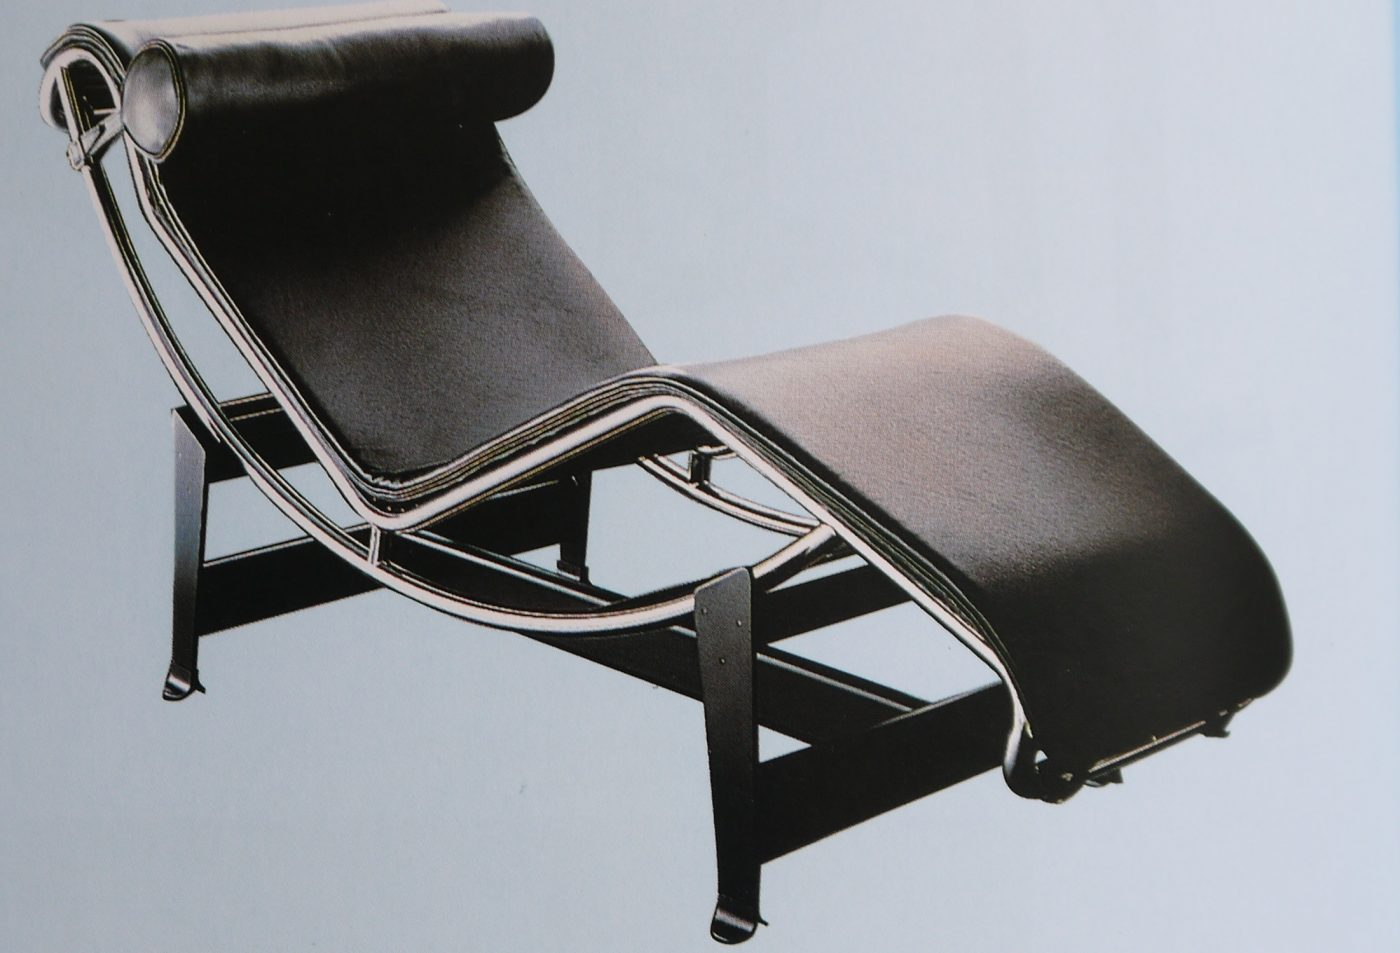 Chaise longue LC4 (Le Corbusier, Pierre Jeanneret, Charlotte Perriand)